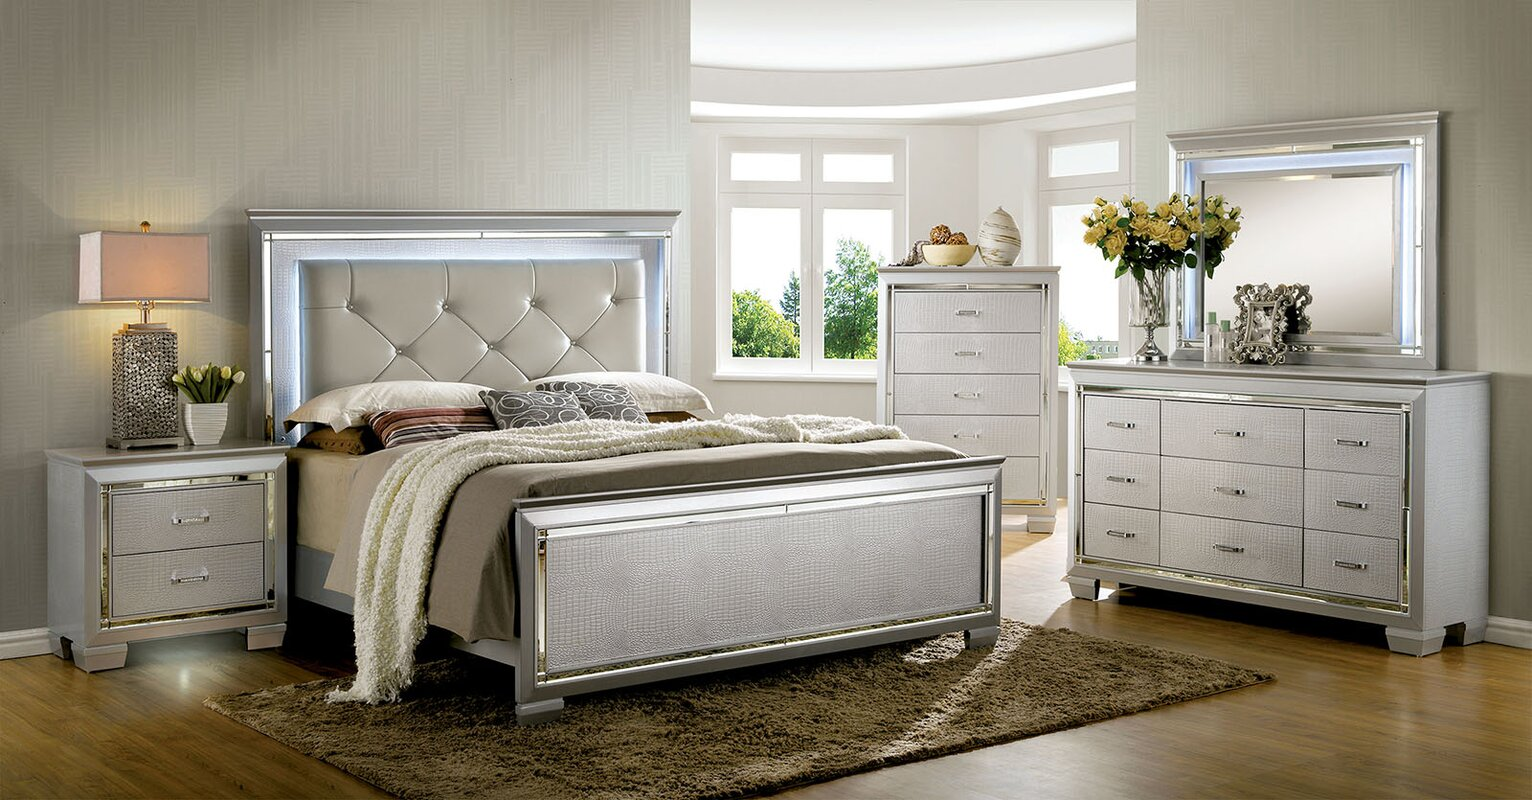 bedroom furniture images. Bokan Lake Platform Configurable Bedroom Set Furniture Images I